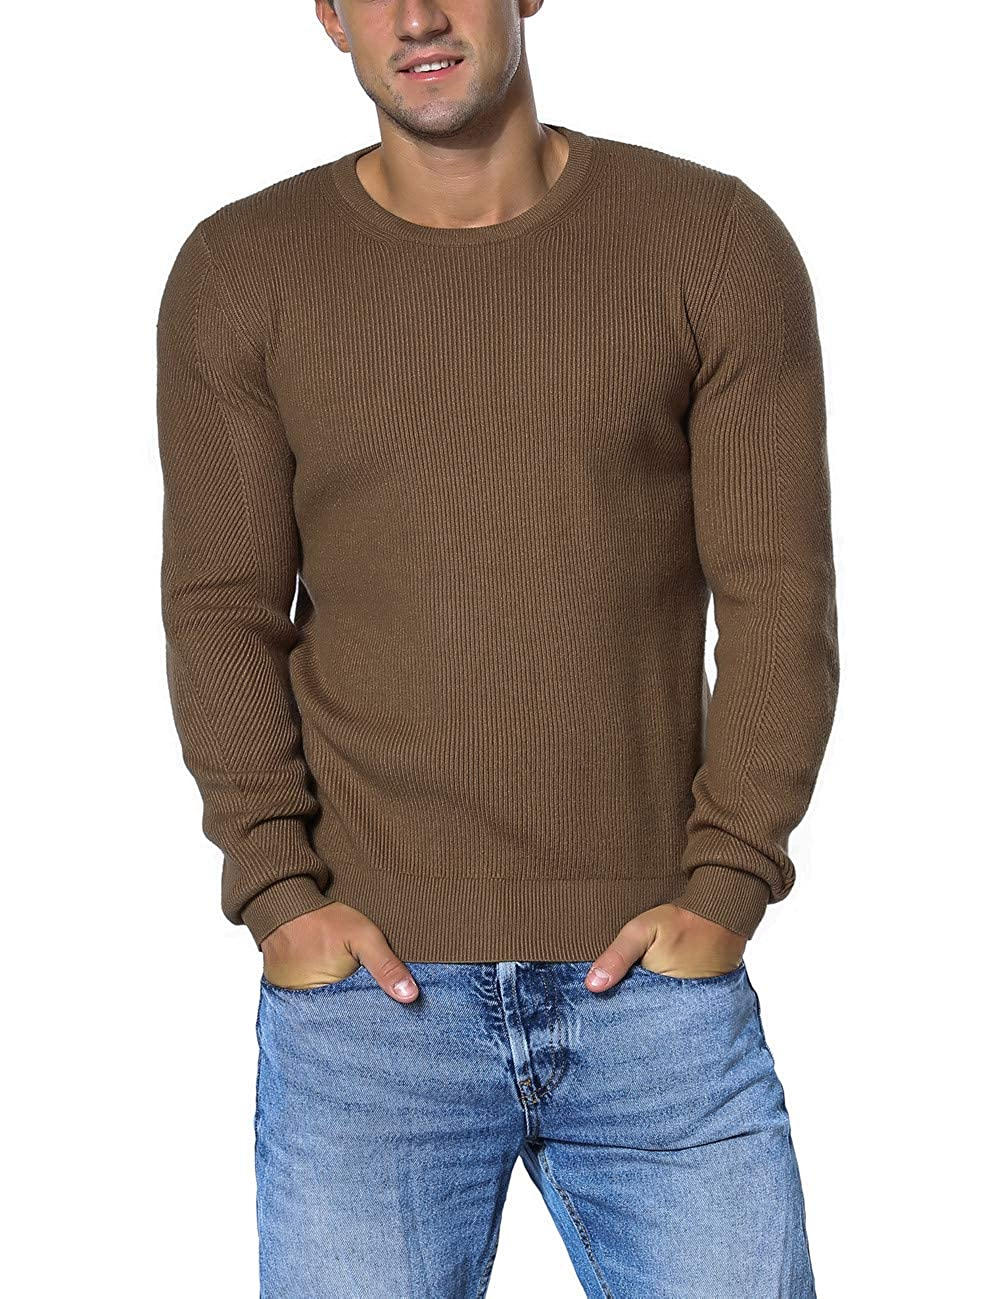 Rocorose Men's Winter Tunic Sweater Crew Neck Knit Ribbed Long Sleeves RR8218043